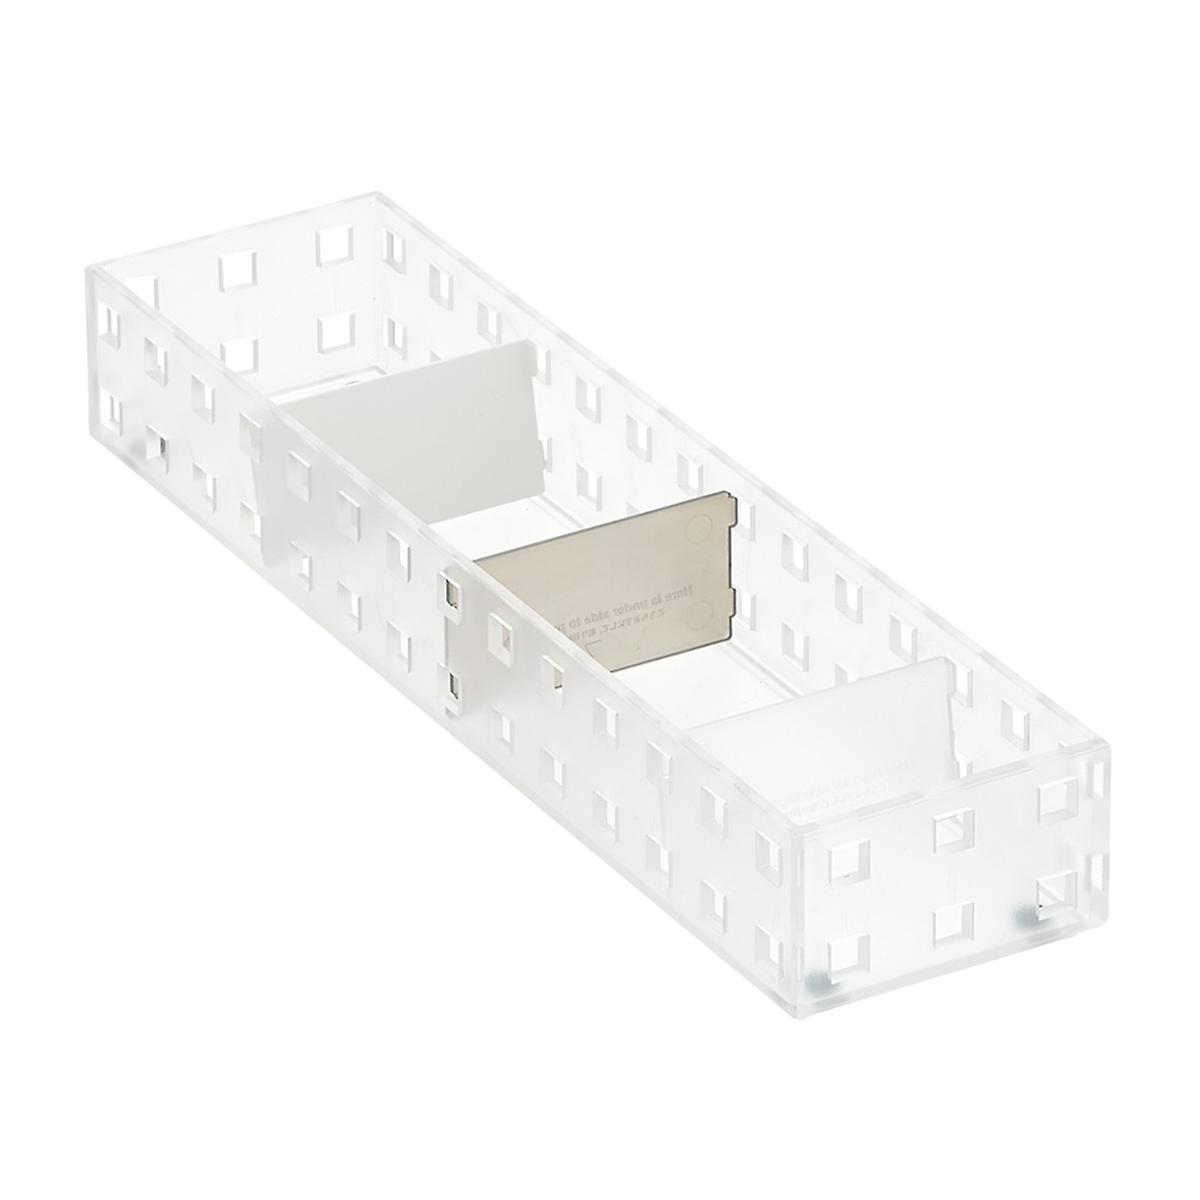 Like-it Bricks Narrow Divider